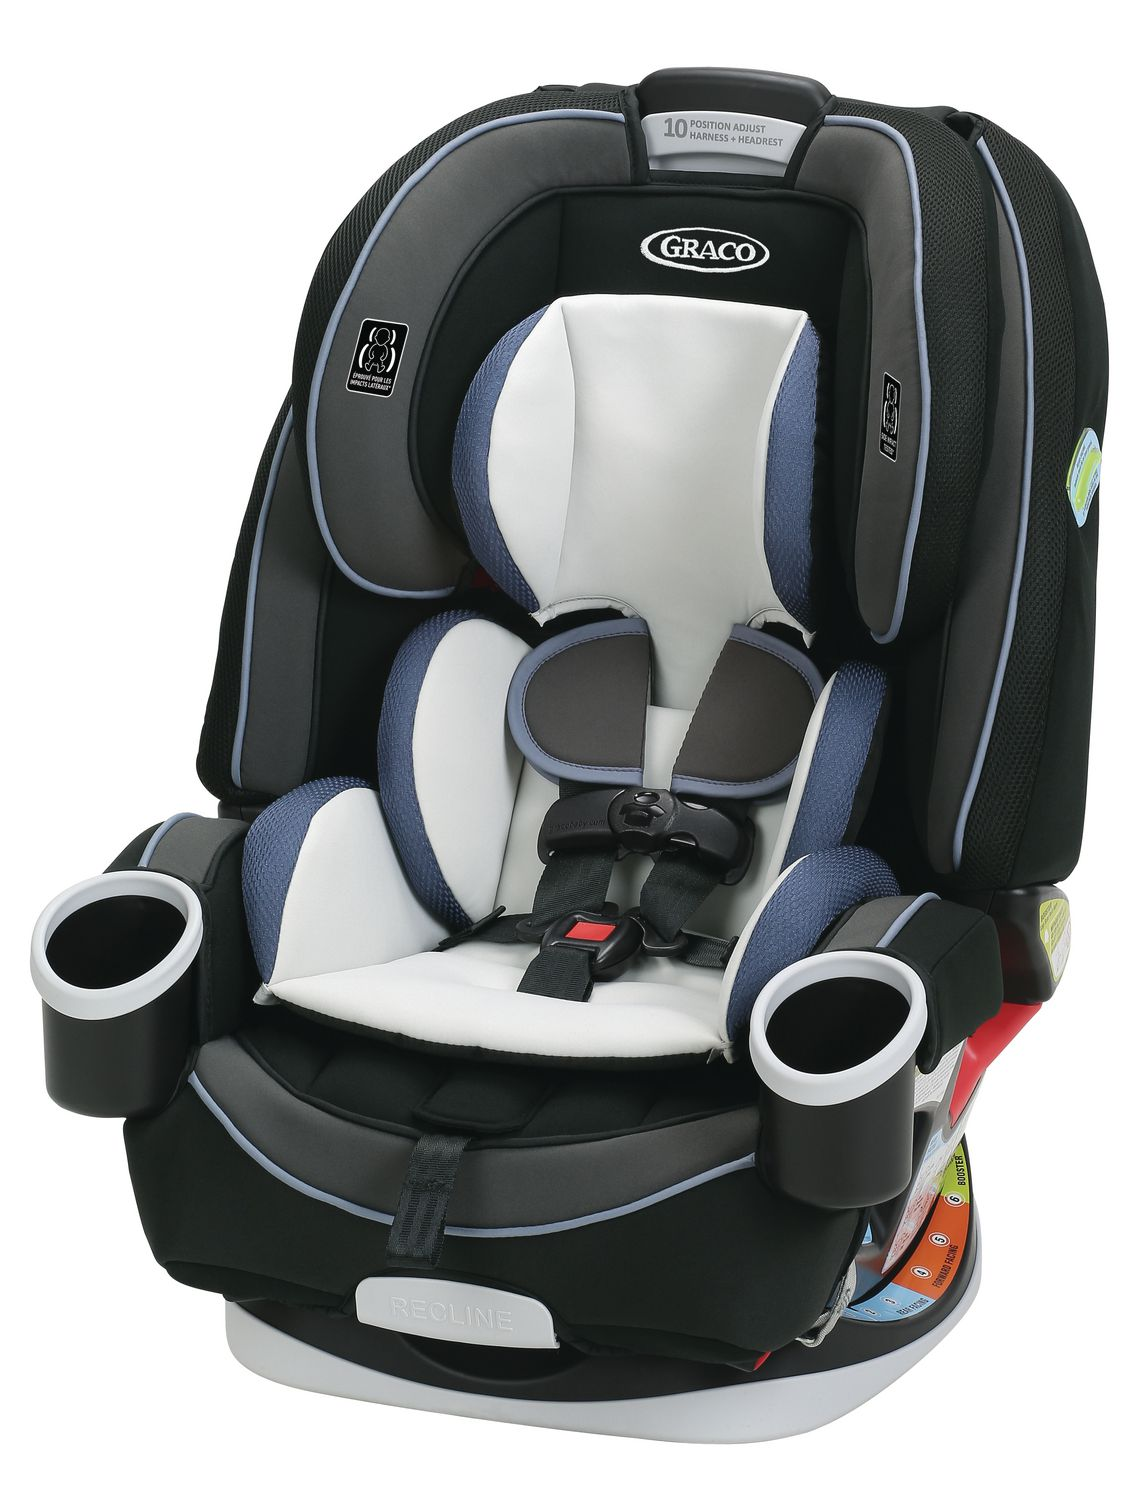 GracoR 4EverR 4 In 1 Car Seat HydeTM